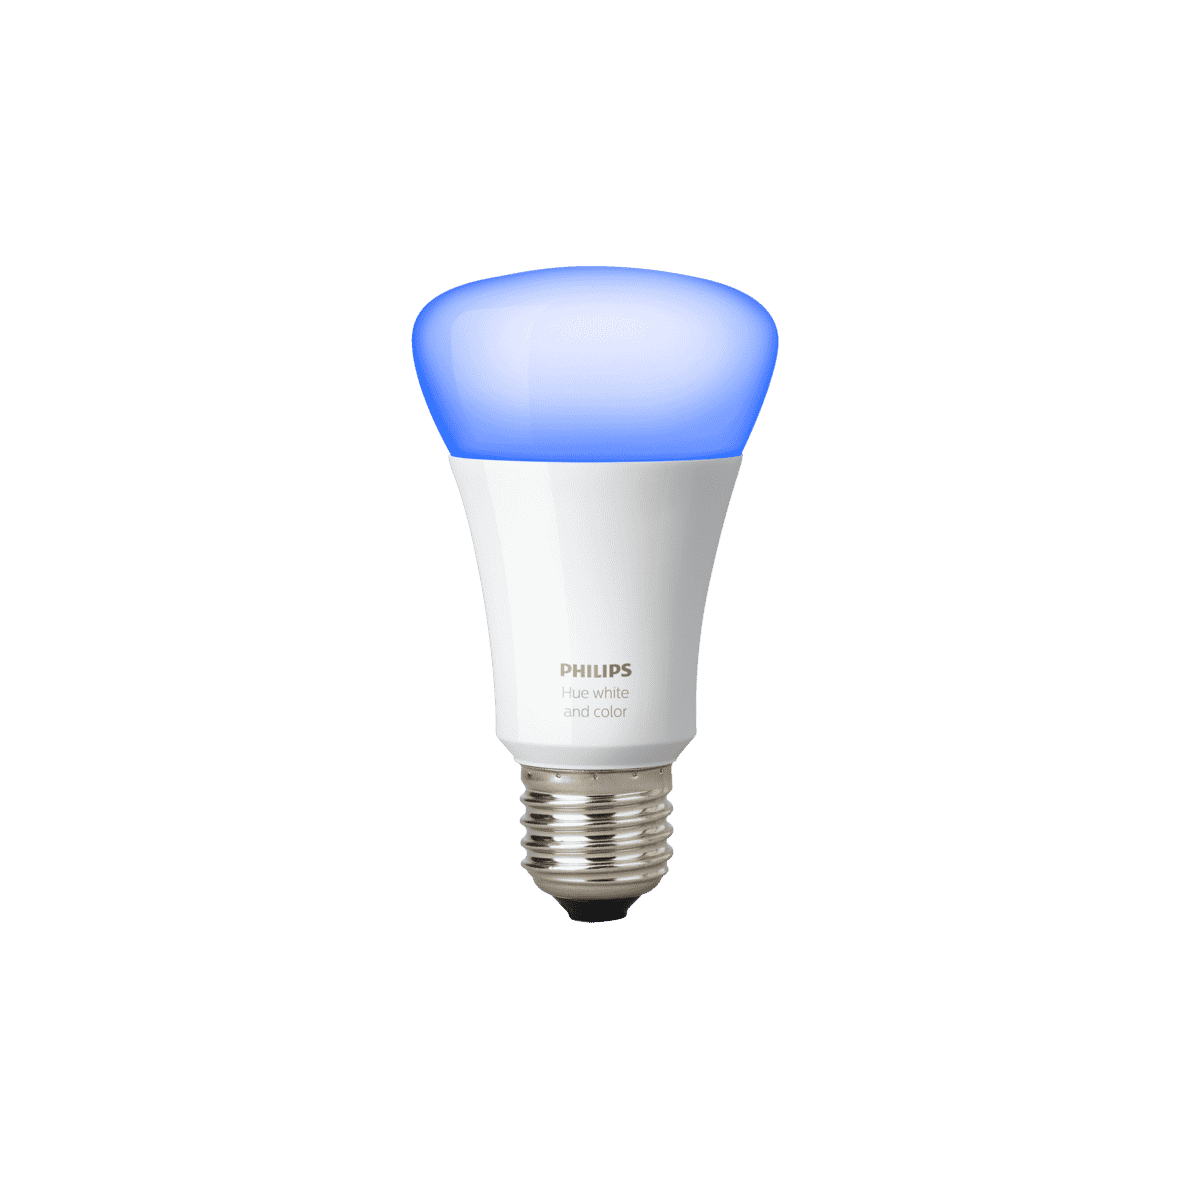 PHILIPS PL59298 Hue (3. Generation) LED Leuchtmittel 10 Watt